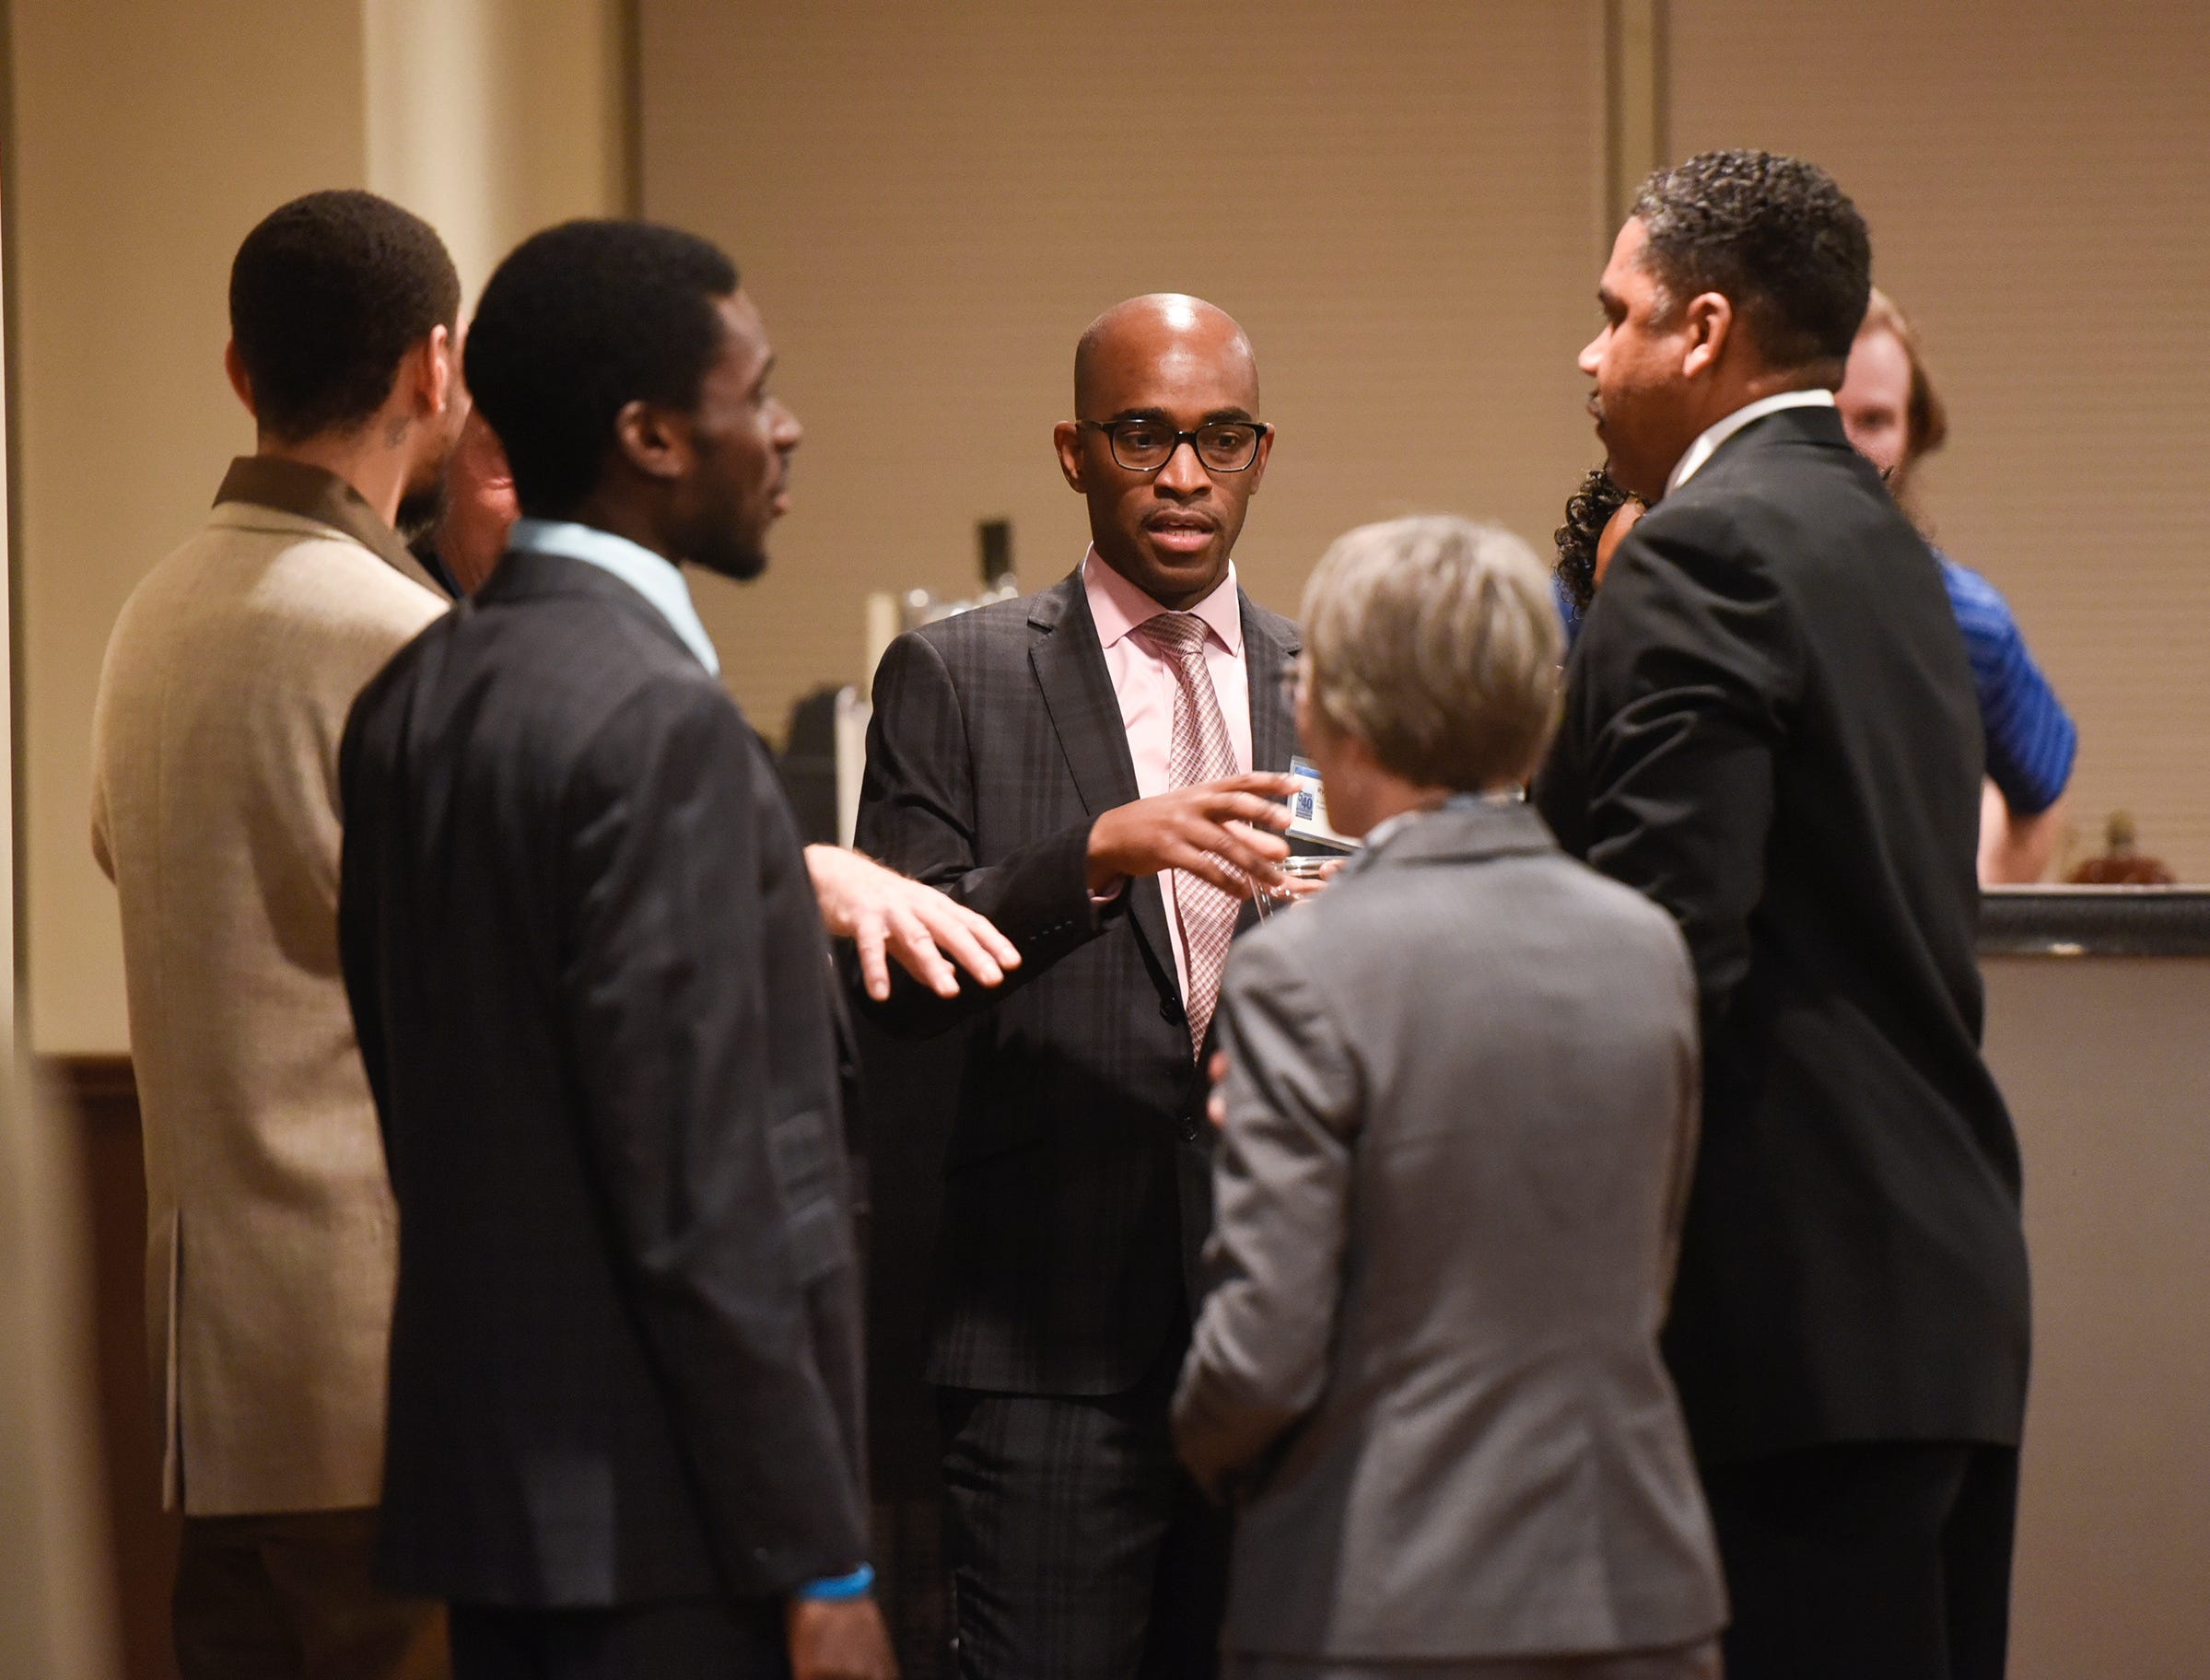 Ryan Daniels talks with friends before the start of the 5 Under 40 Awards program Tuesday, Jan. 15, in St. Cloud.